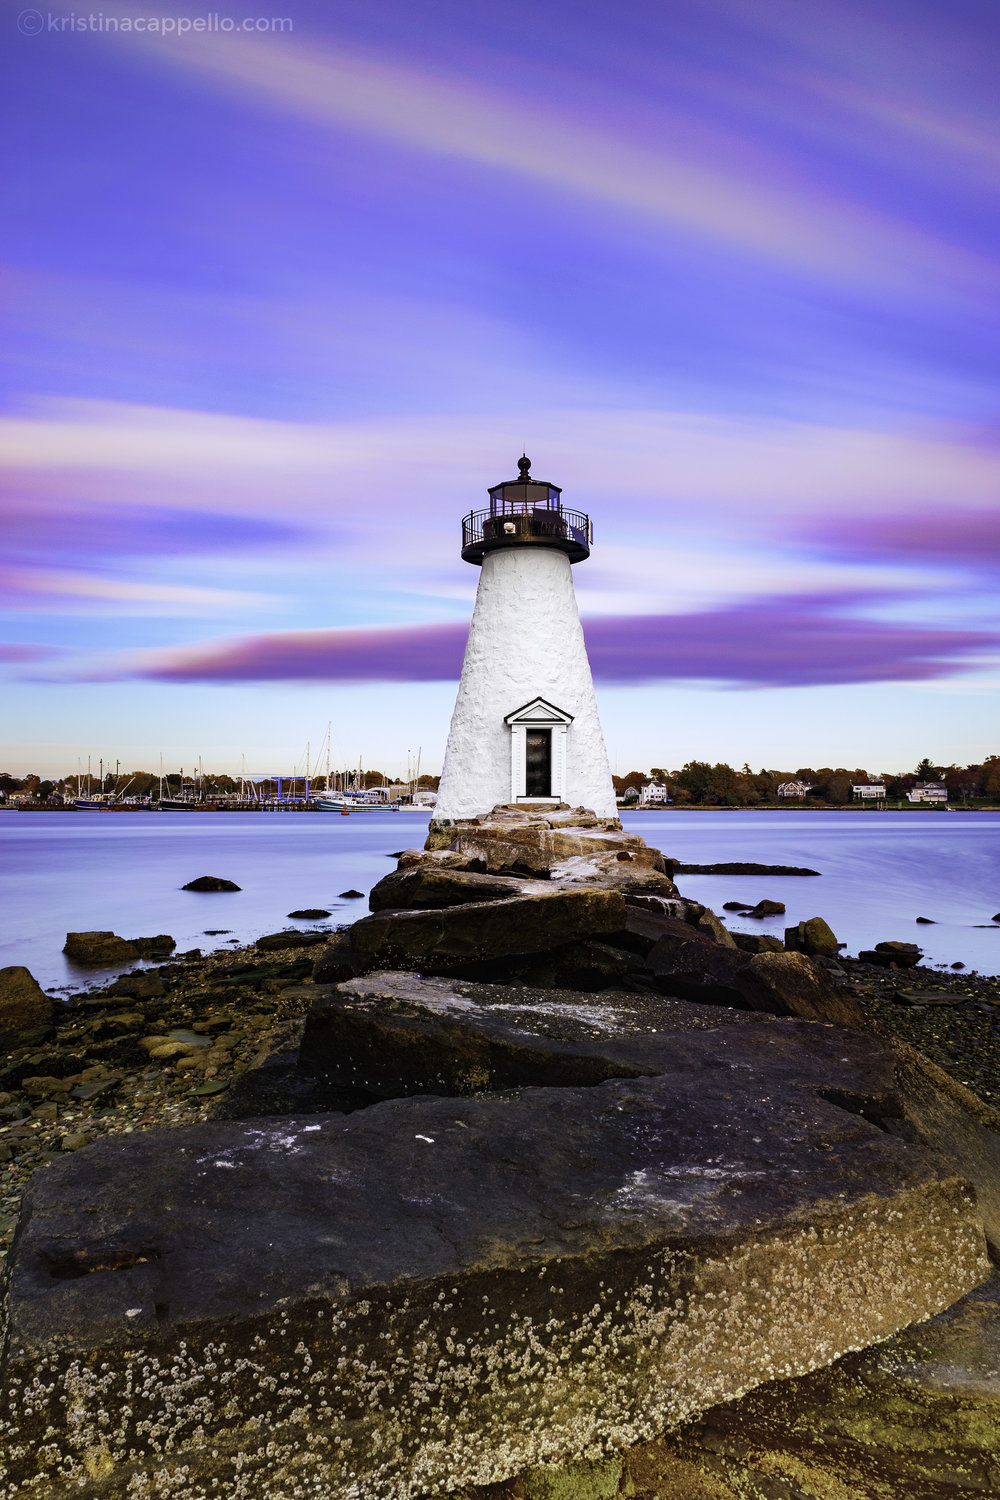 Palmer Island Light Station, New Bedford Massachusetts